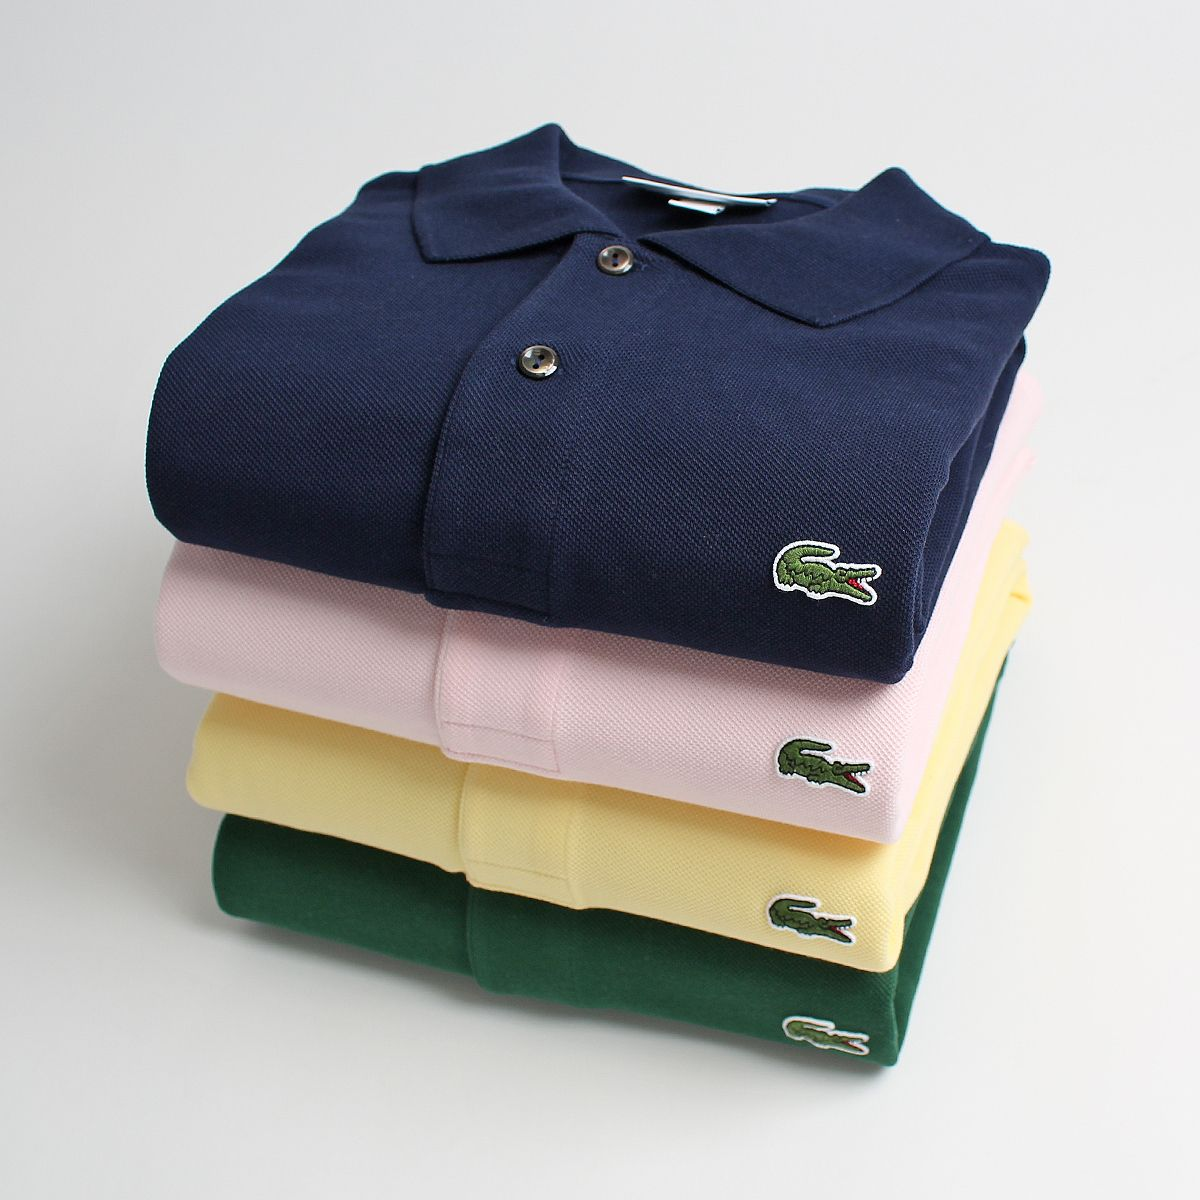 769b9546 The classic and iconic Lacoste L.12.12 Polo Shirt available at Urban  Industry in various colours.